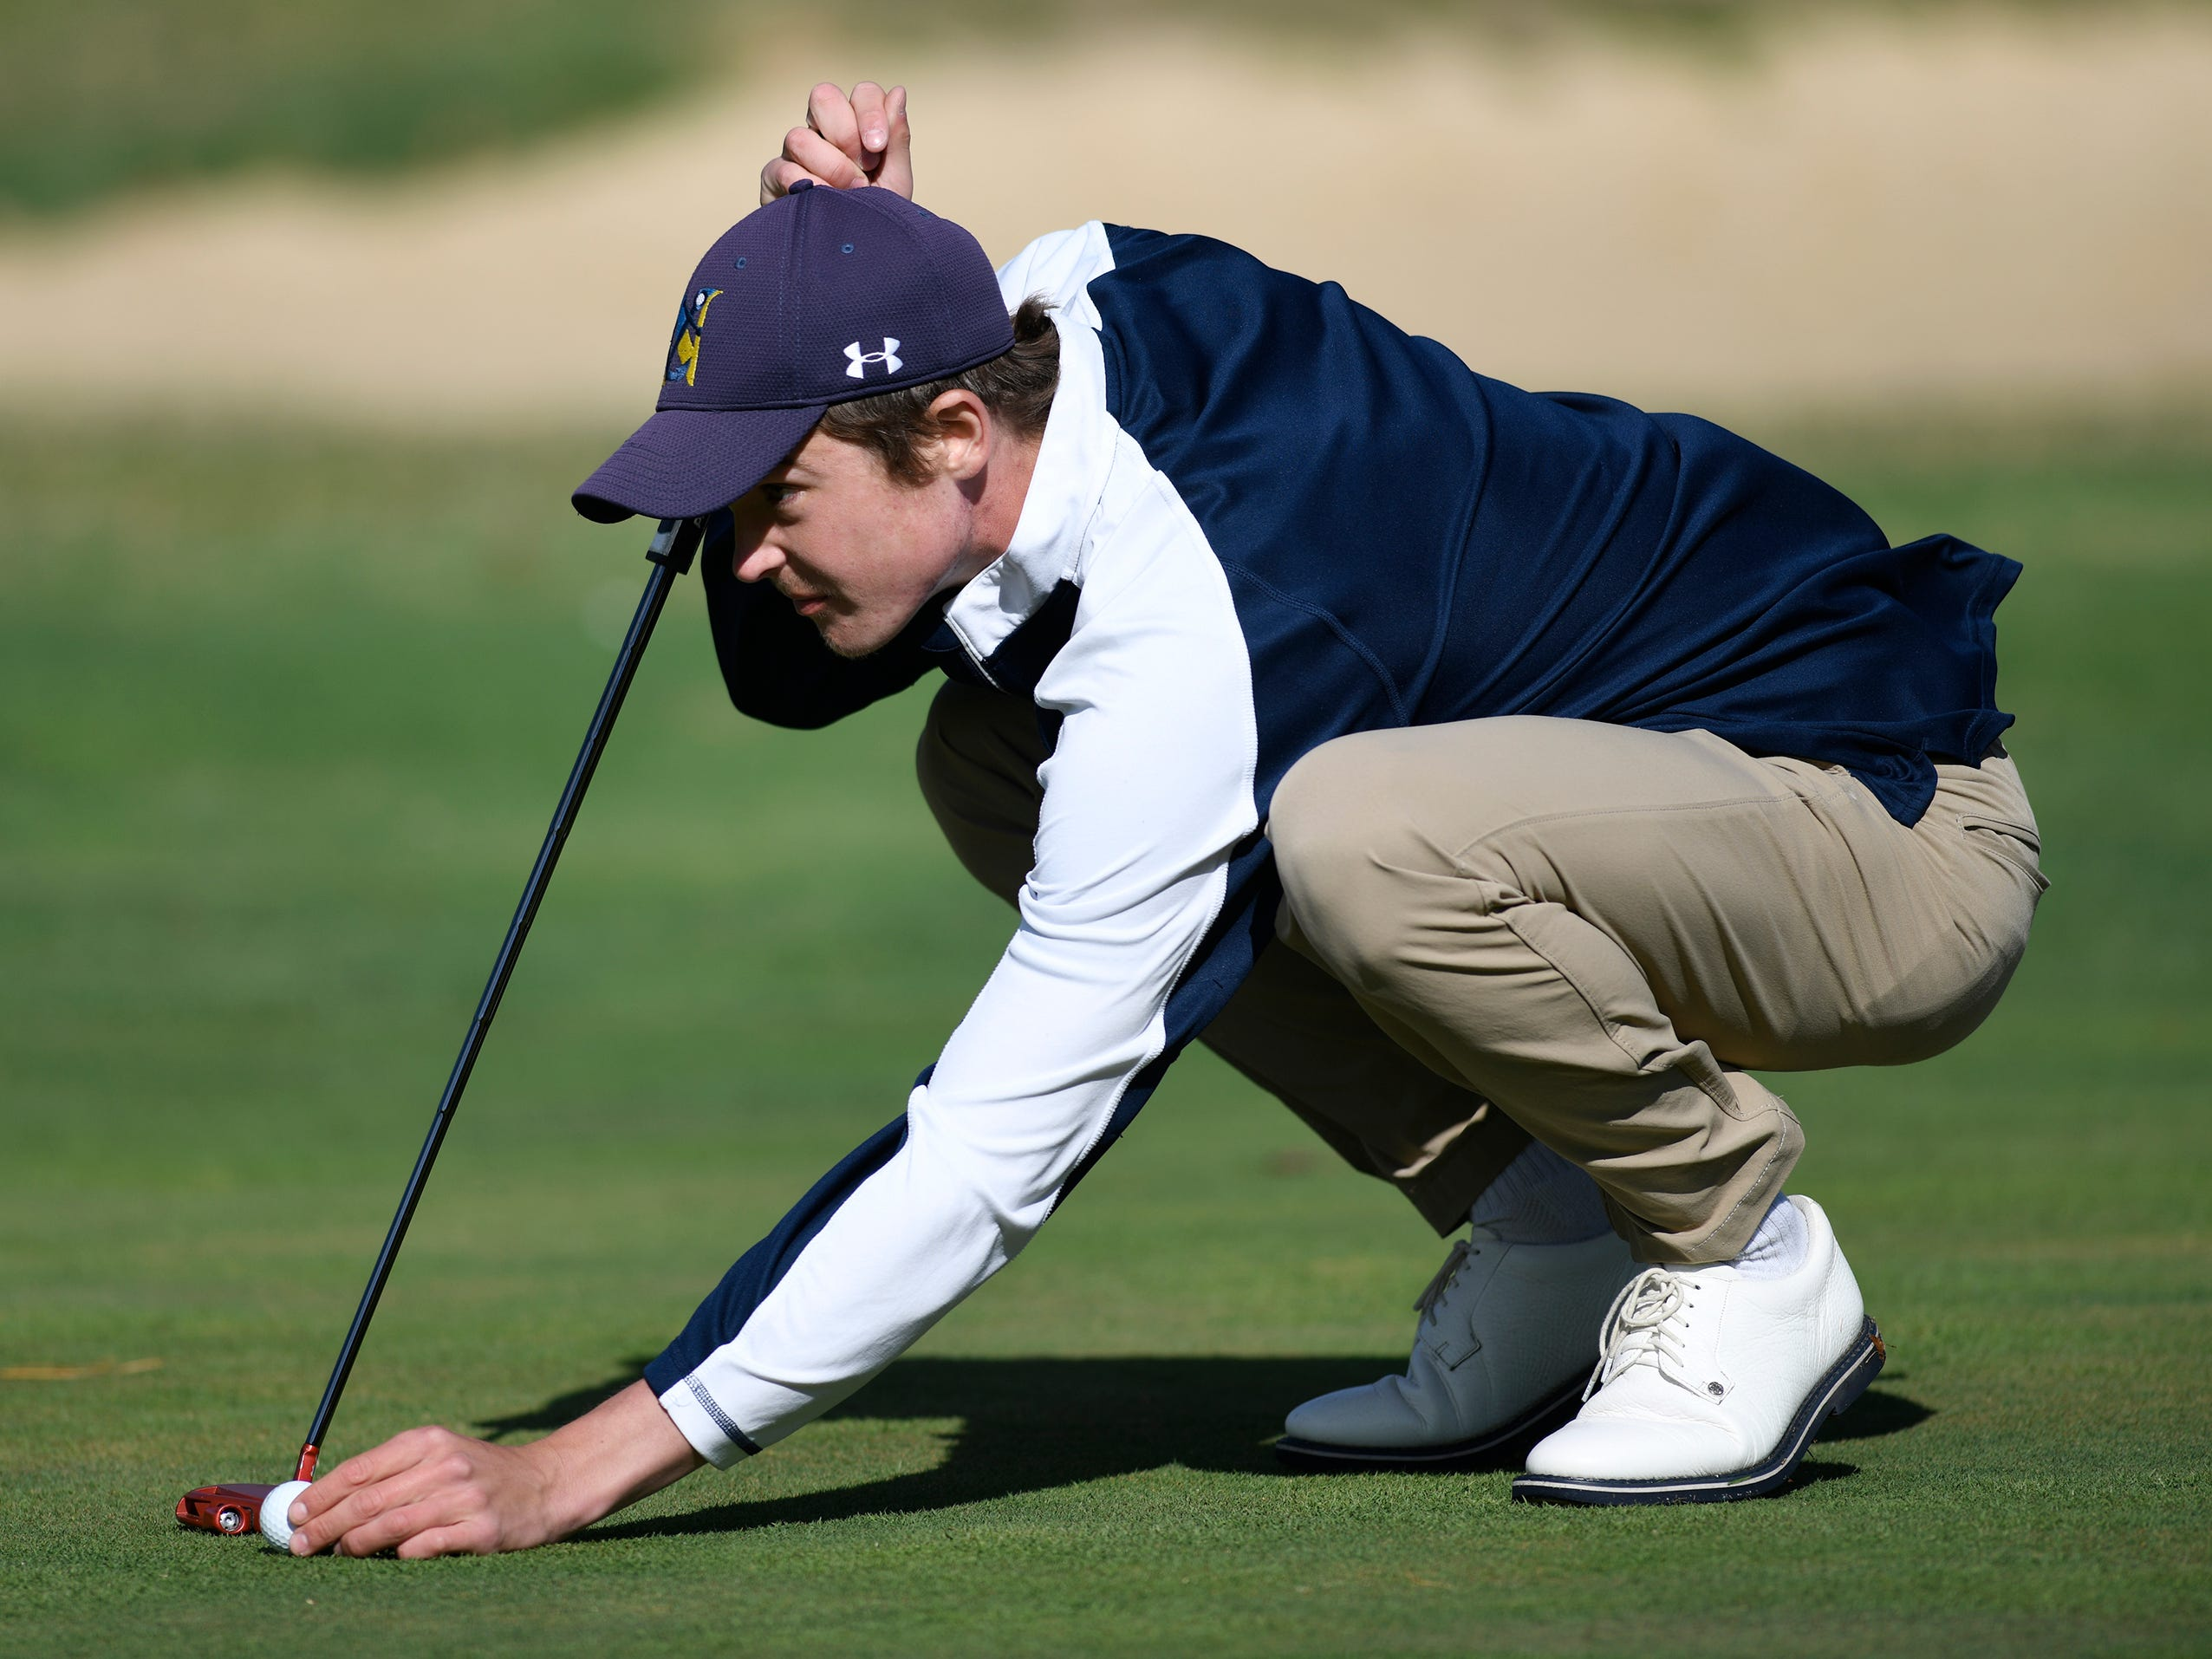 Connor Bekefi of Tome River North preps for a putt at the Ocean County Tournament on April 15, 2019,  at Sea Oaks in Little Egg Harbor. Toms River North's Connor Bekefi emerged as the individual champion with a 3-over-par 75, four shots better than teammate Leo Kane. Toms River North successfully defended its team title, posting a total of 336, which was 18 shots better than Southern. Brick Memorial finished third.